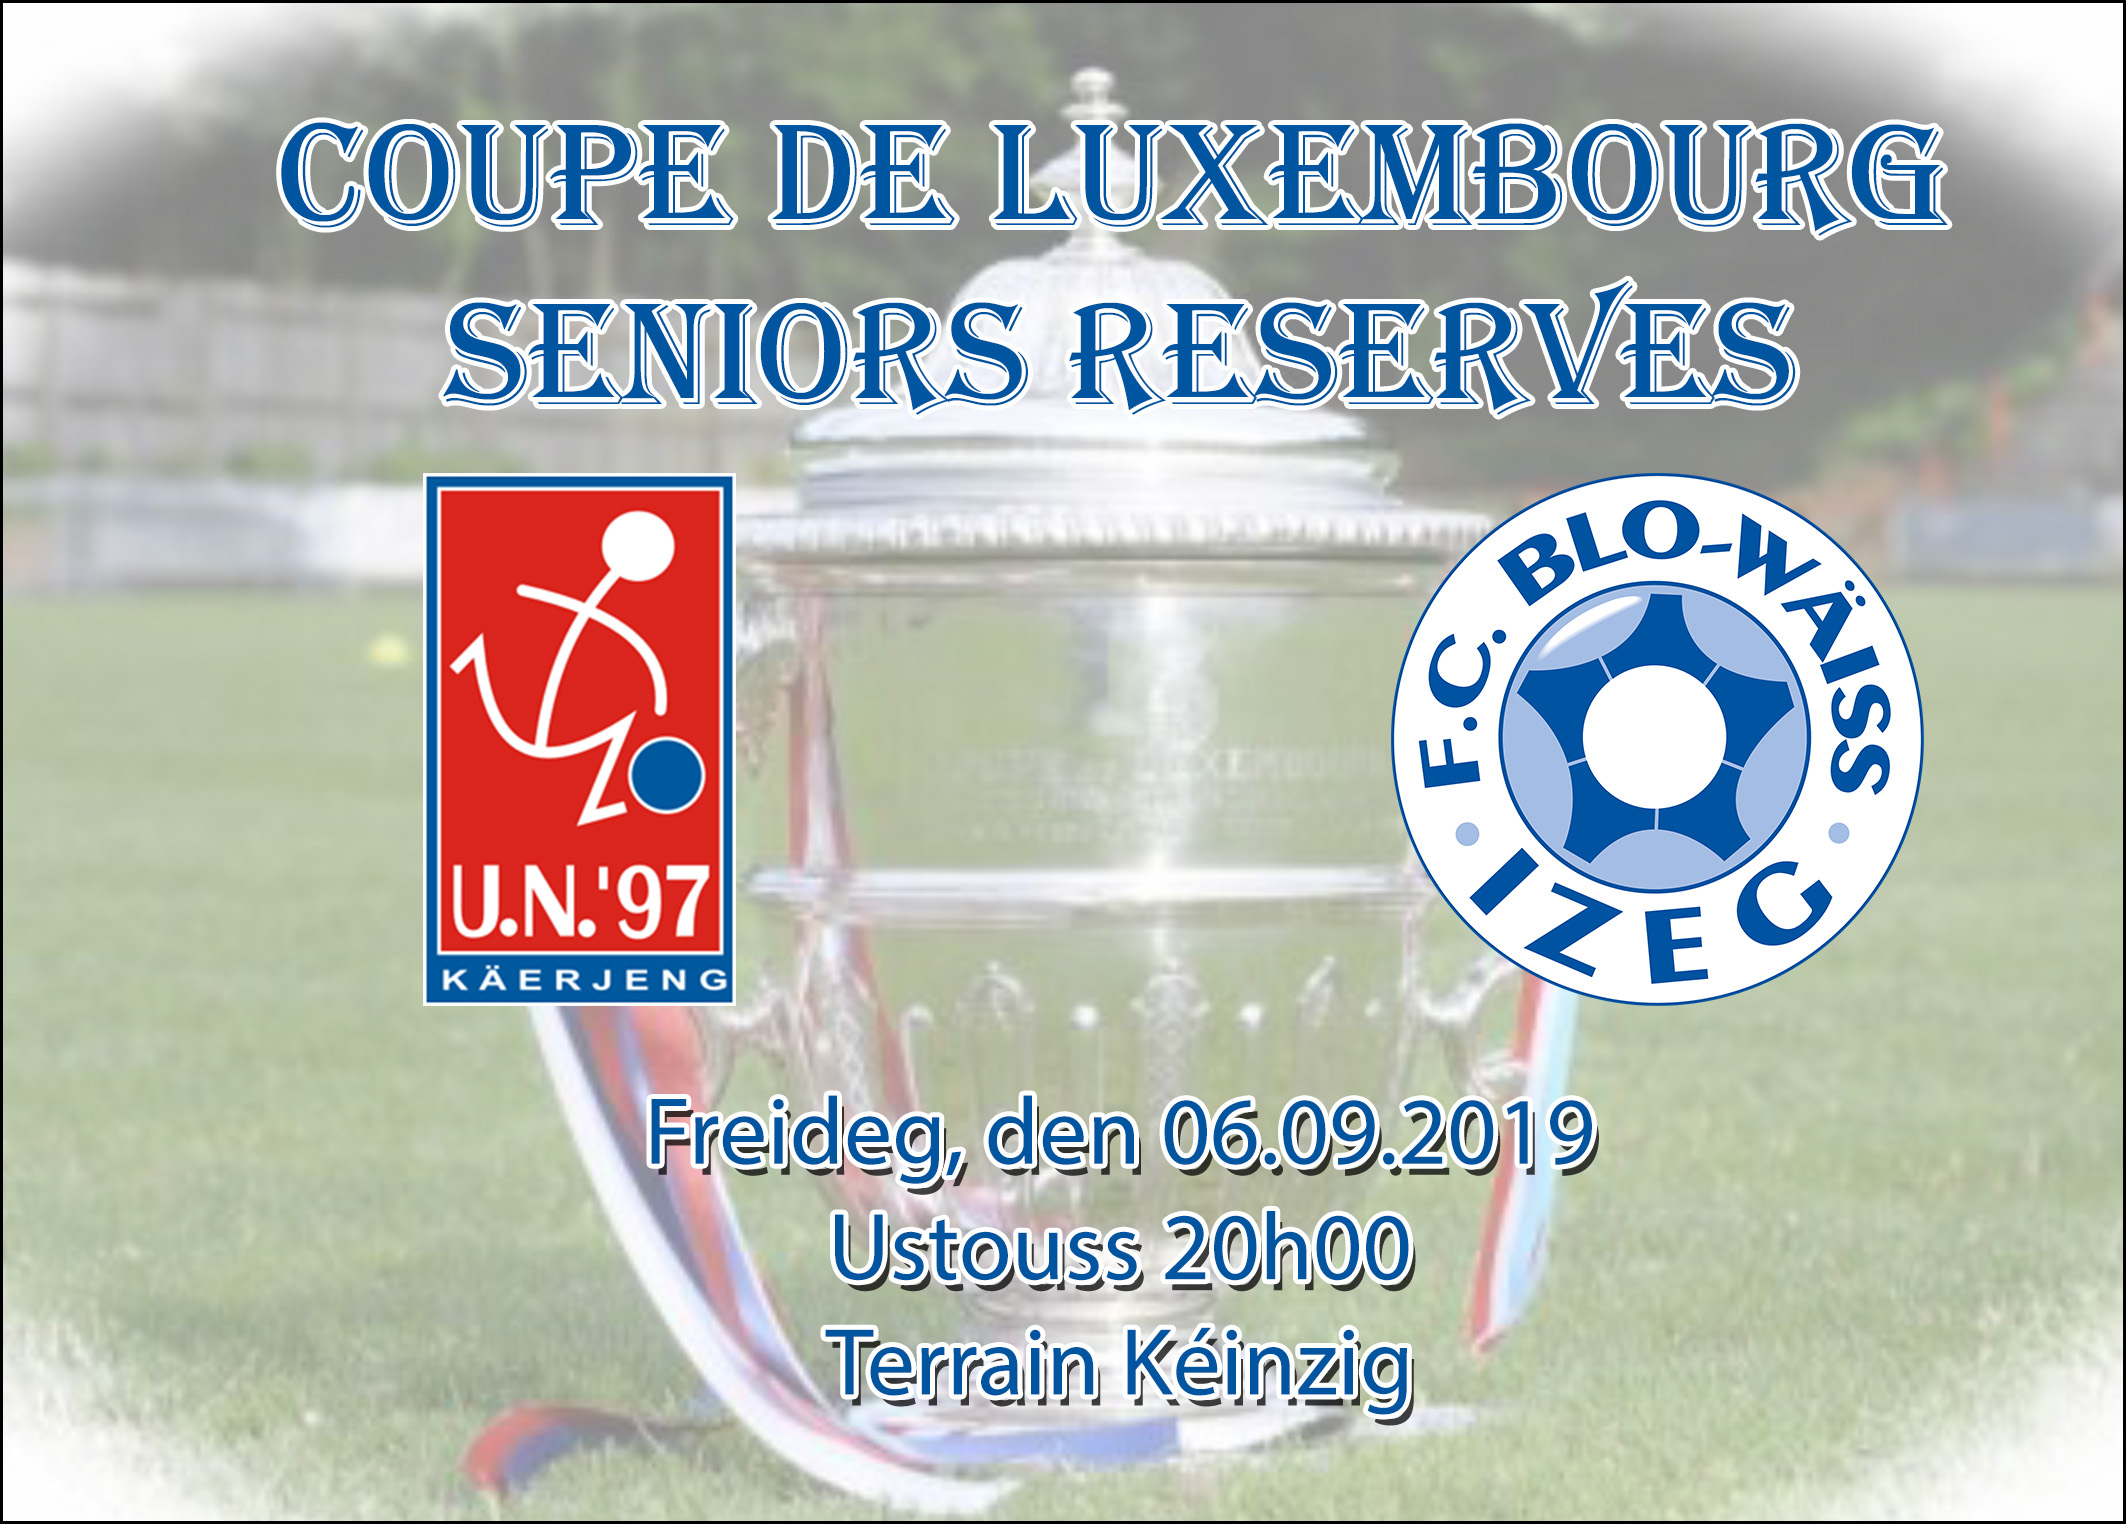 Coupe de Luxembourg - Seniors Reserven